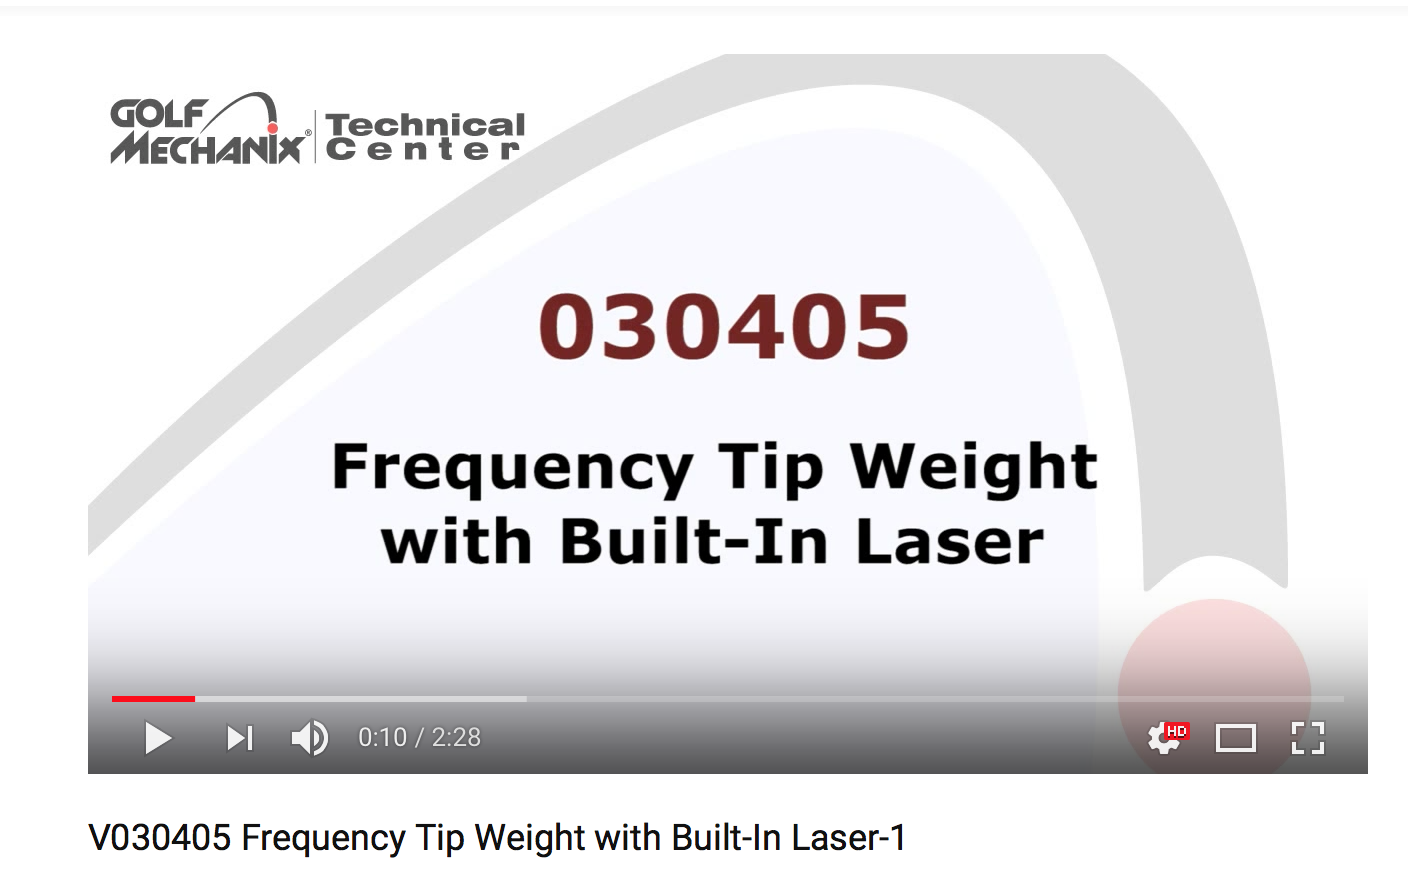 Frequency Tip Weight with Built-In Laser